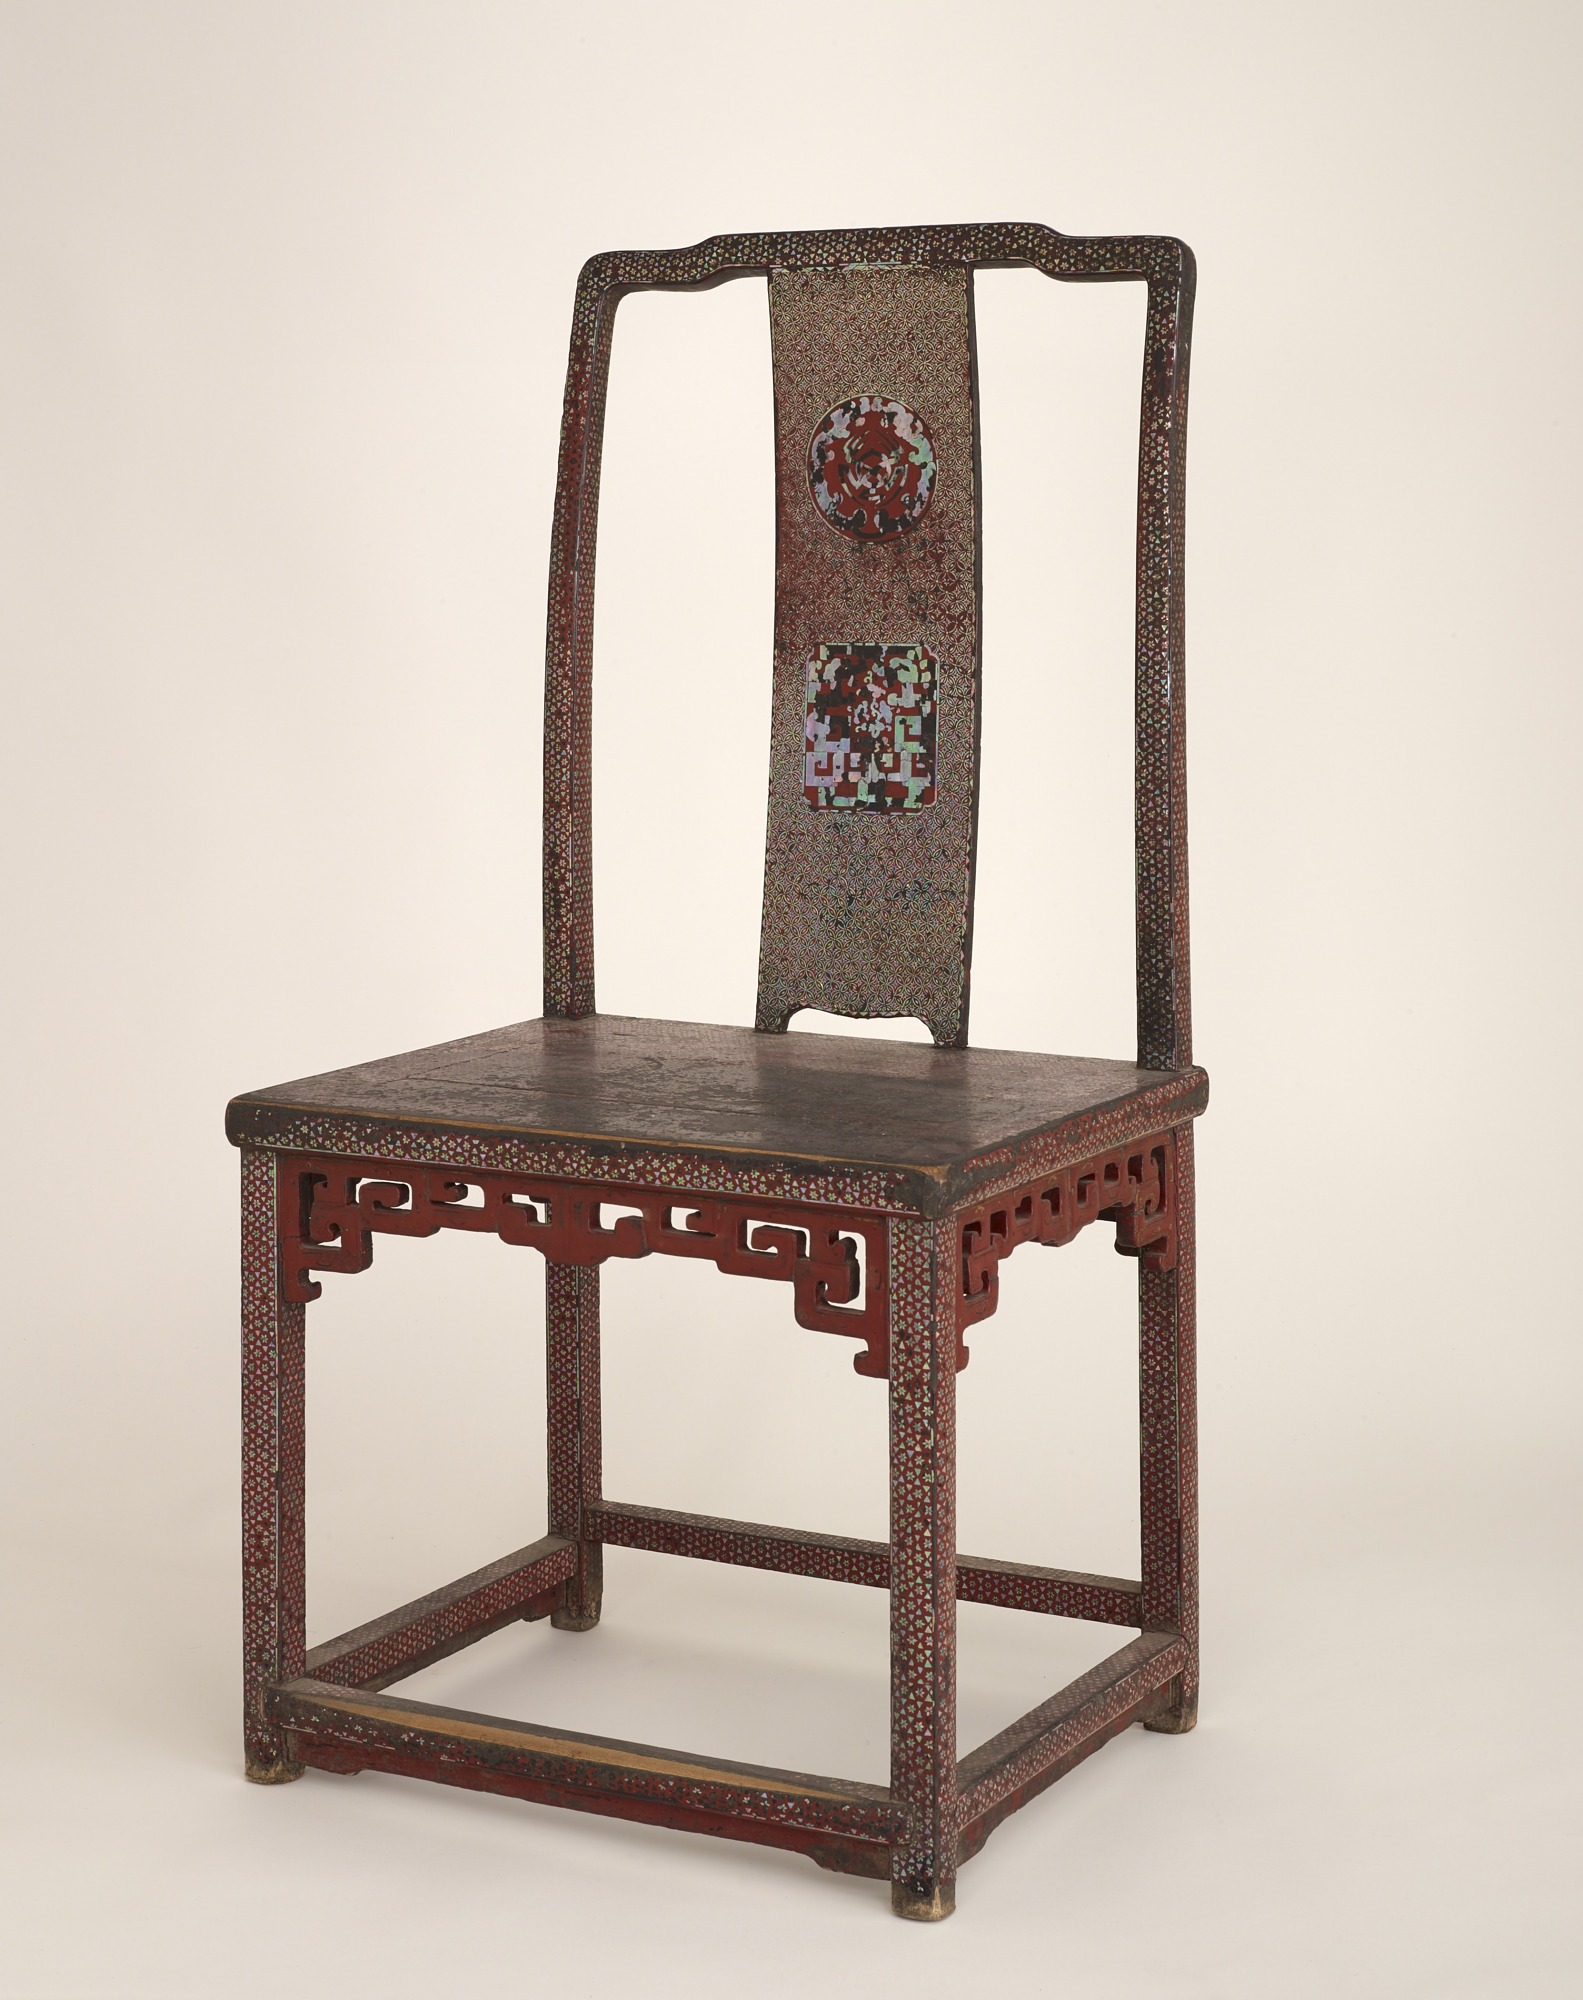 images for Chair. Wood, covered with red lacquer and inlaid with mother-of-pearl